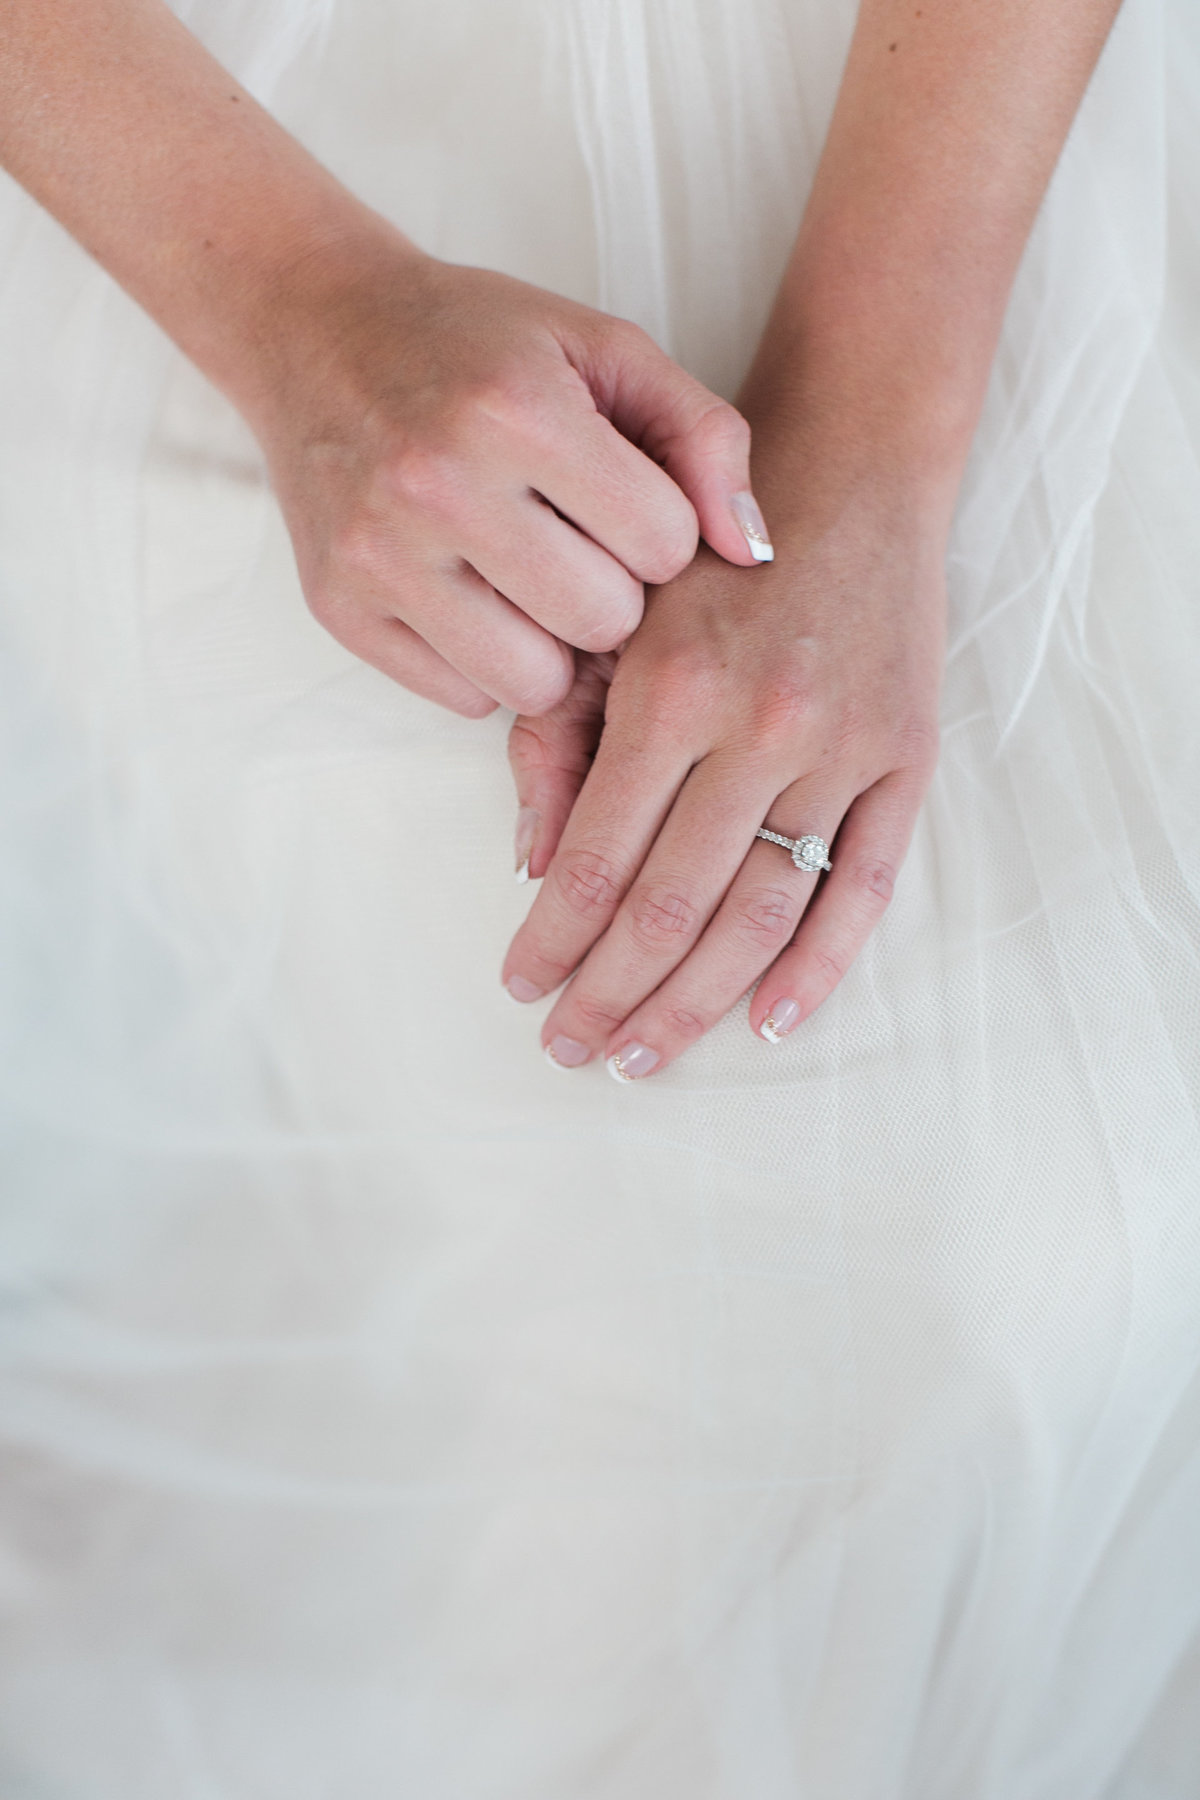 Elizabeth Friske Photography 2016 Wedding  Images-54